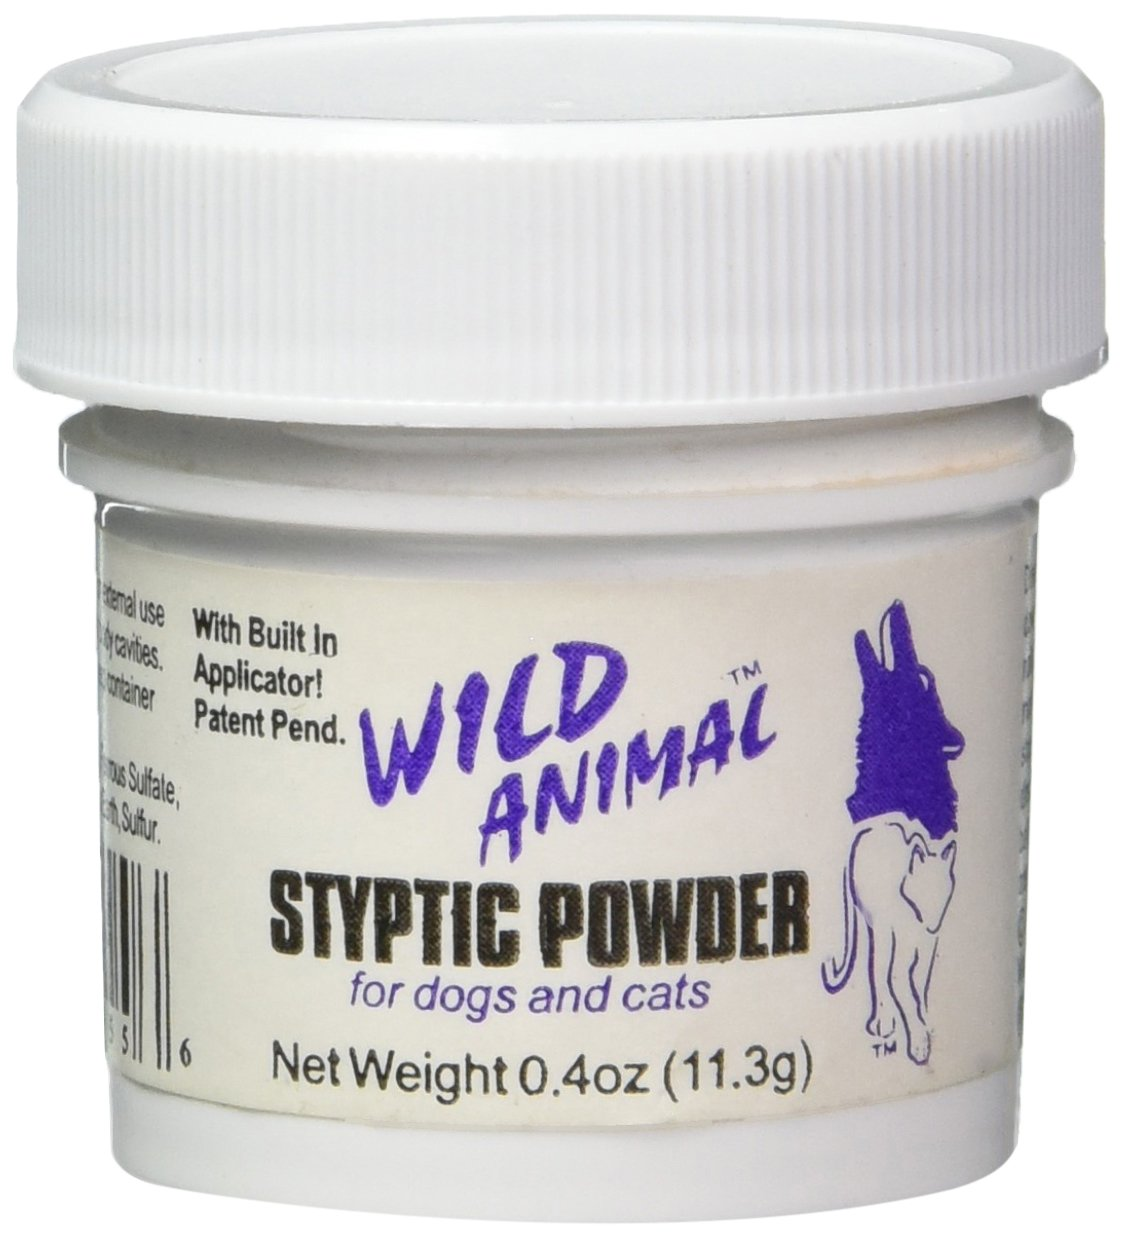 Wild Animal Styptic Powder